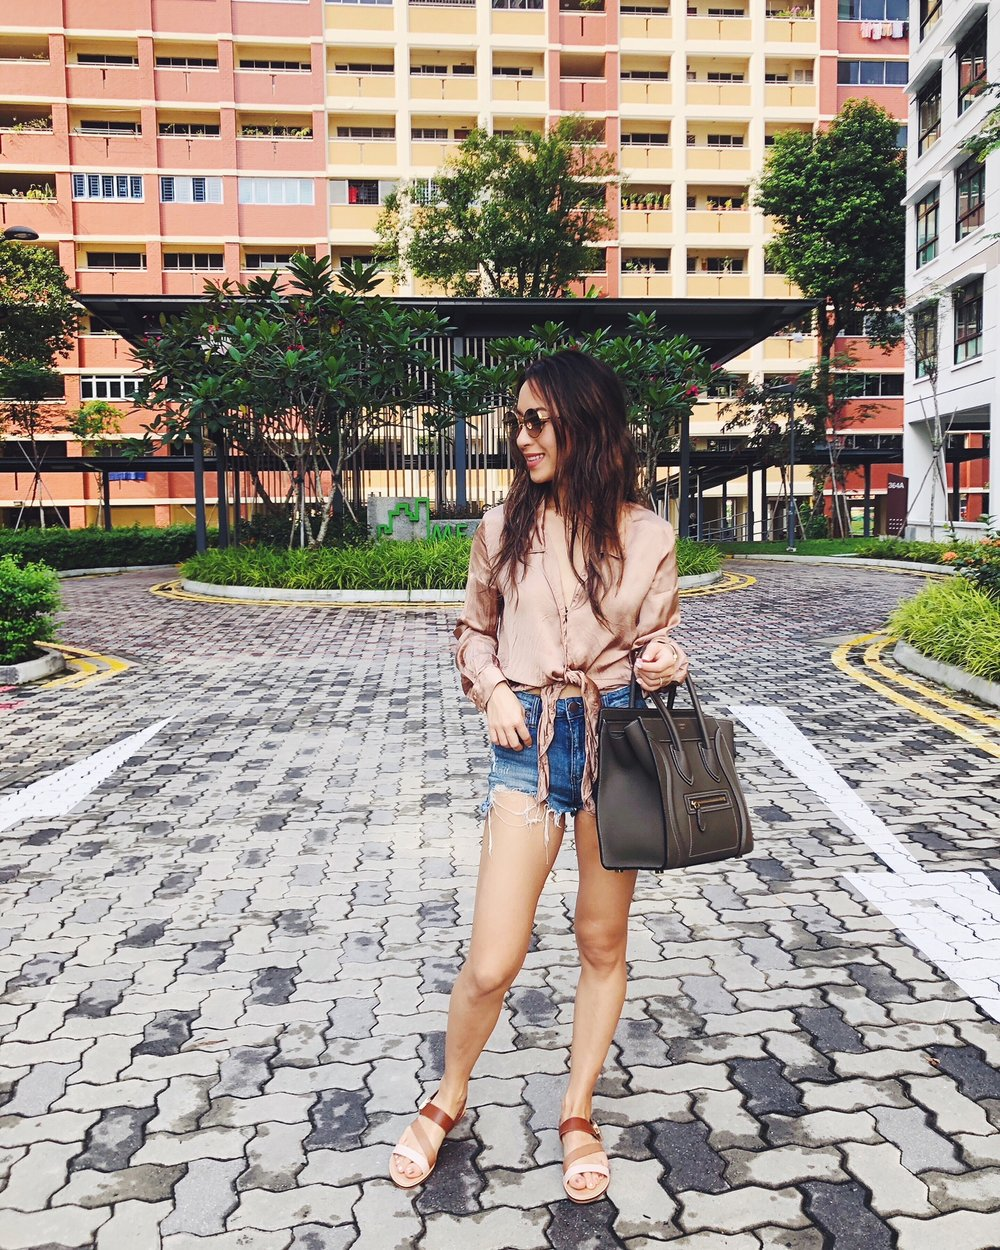 Location: Singapore | Wearing: Aritzia silk blouse, Charles & Keith sandals & sunnies, Nordstrom STS blue denim shorts, Celine micro luggage